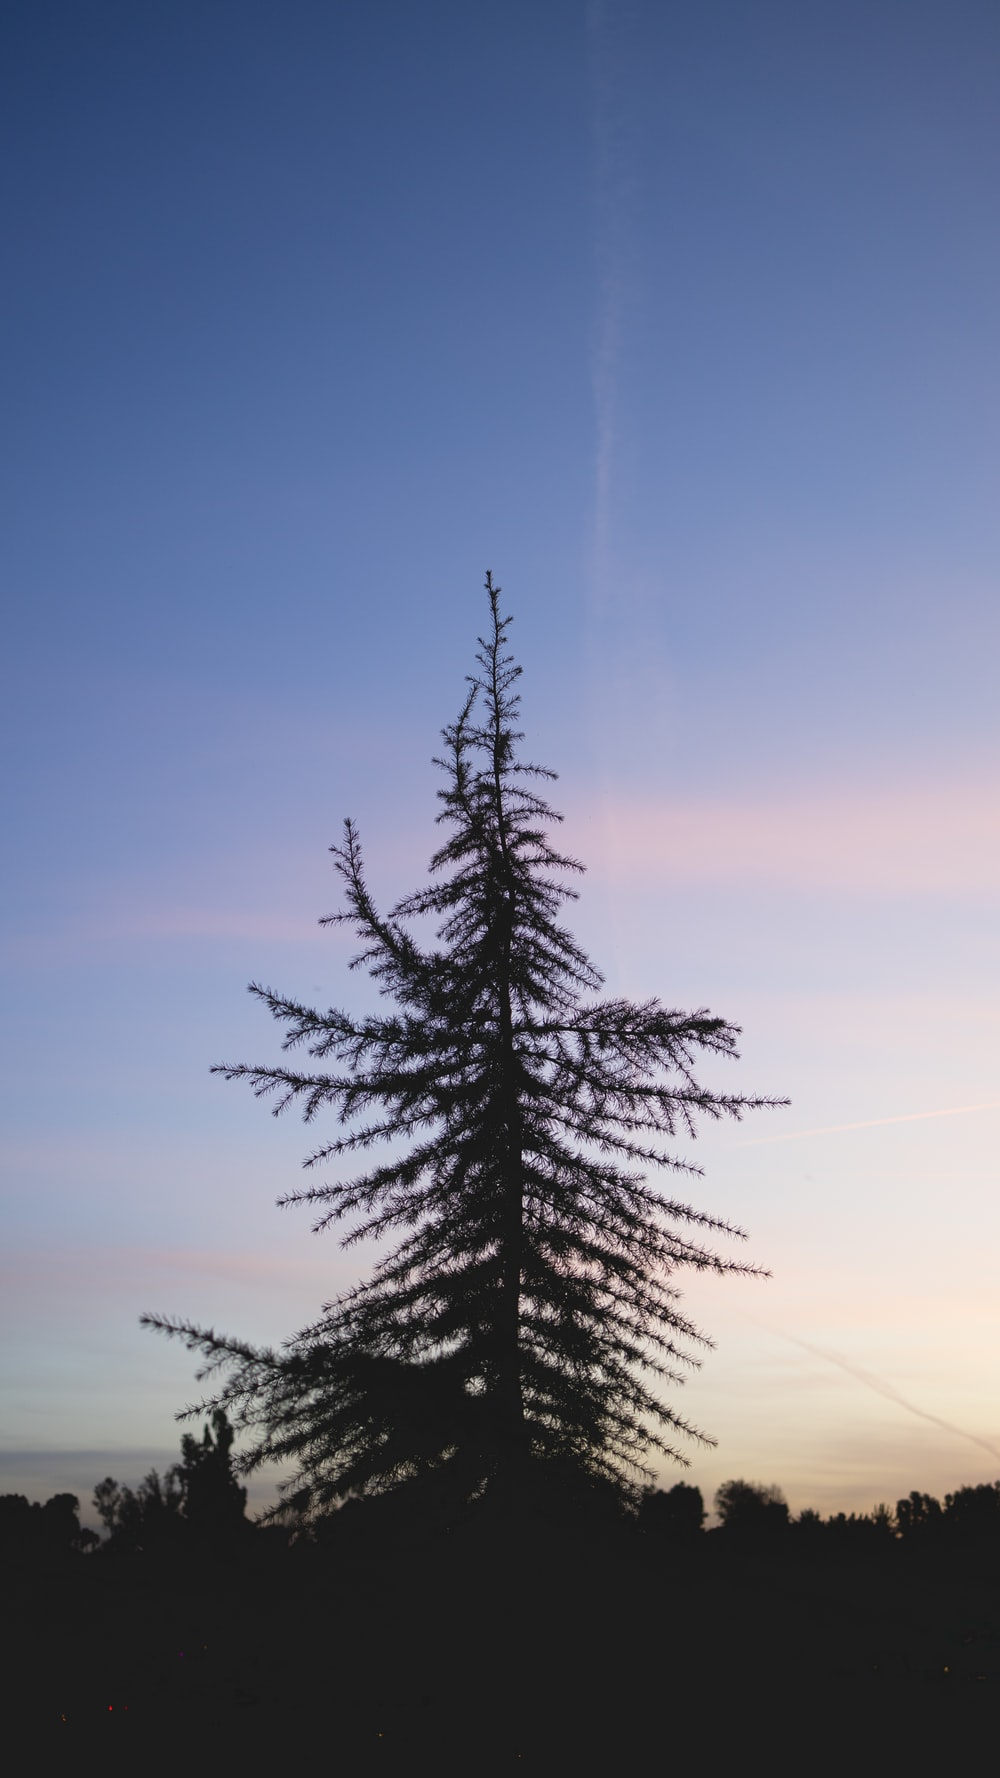 green pine tree under blue sky during daytime